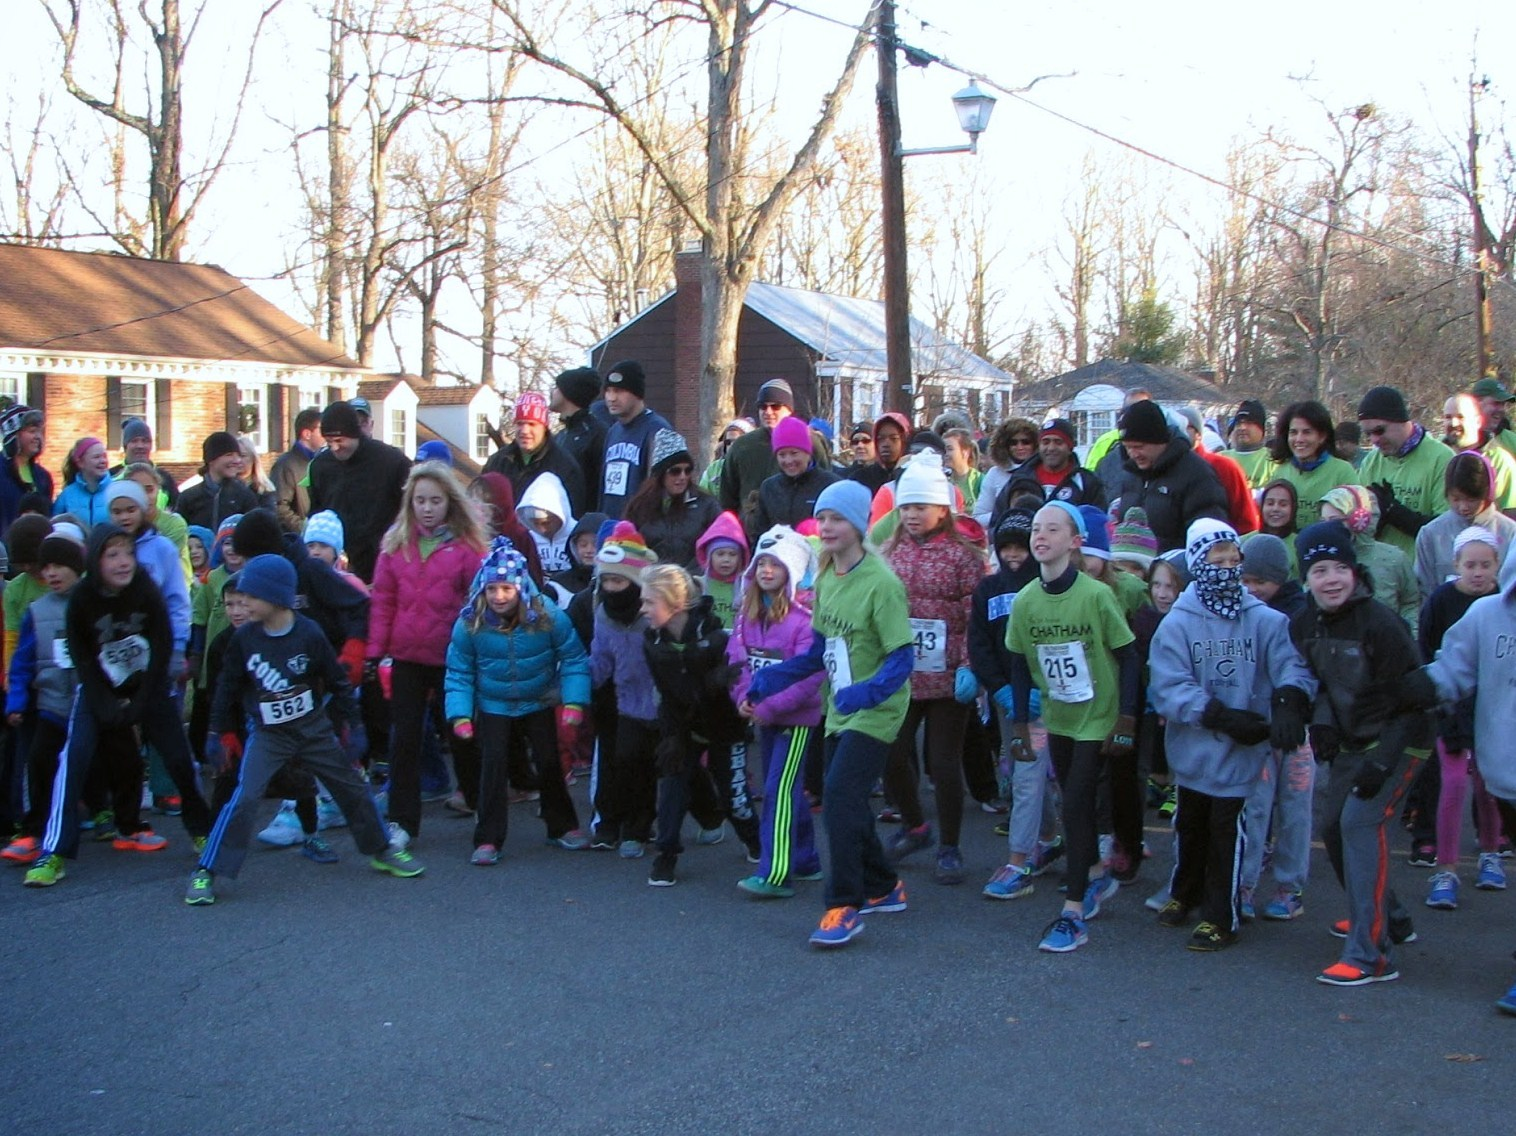 5th annual Thanksgiving Turkey Trot Rates as Most Successful